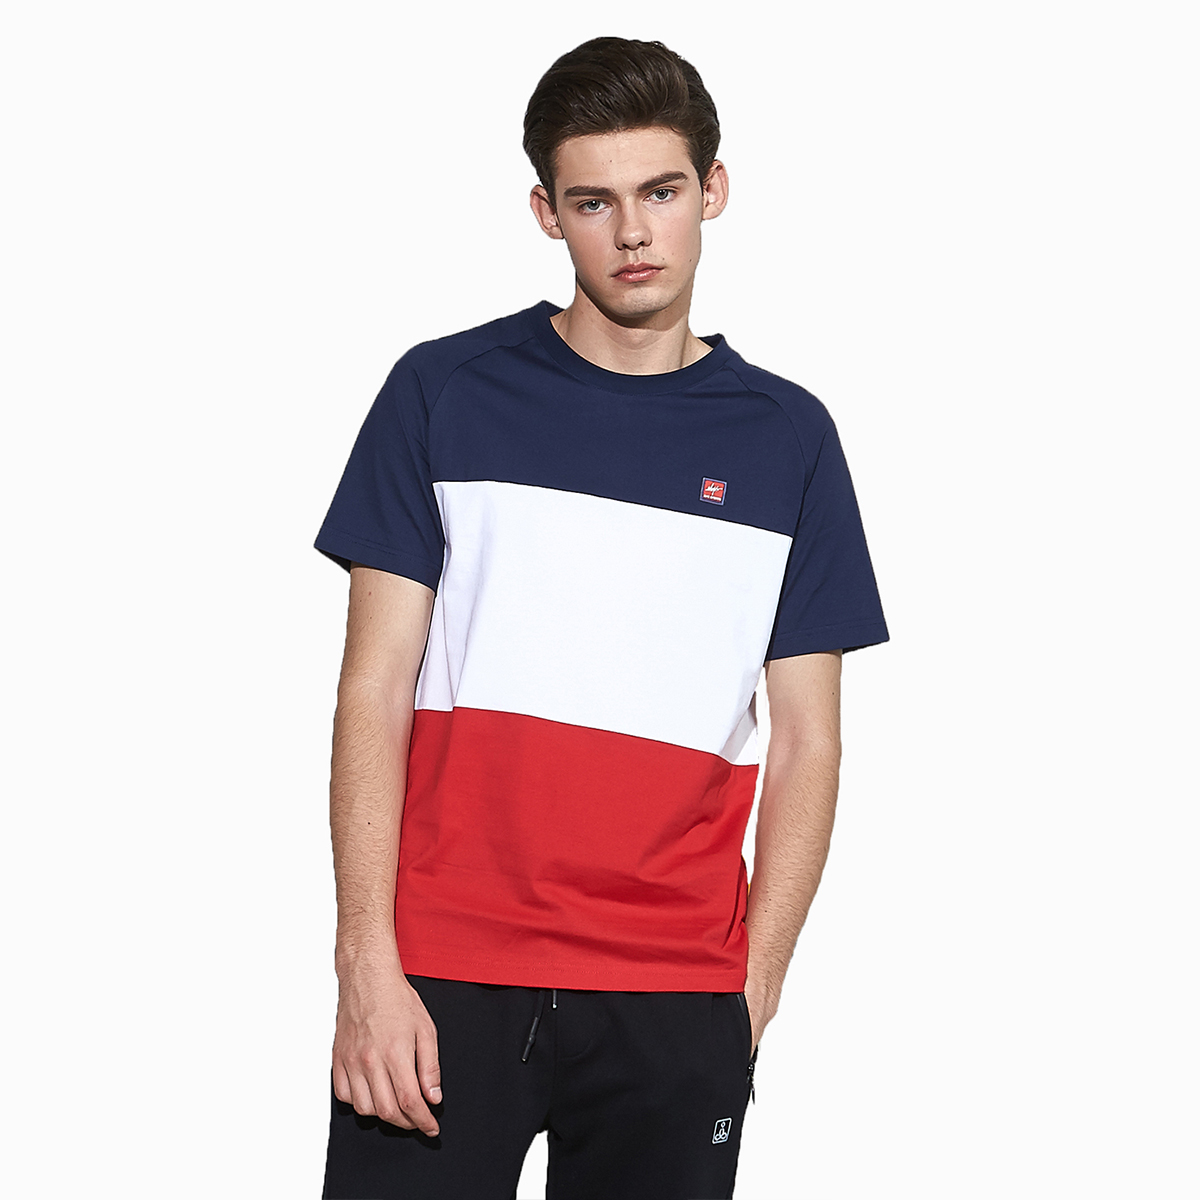 Ilys handsome comfortable versatile color matching short sleeve round neck T-shirt sports casual short sleeve